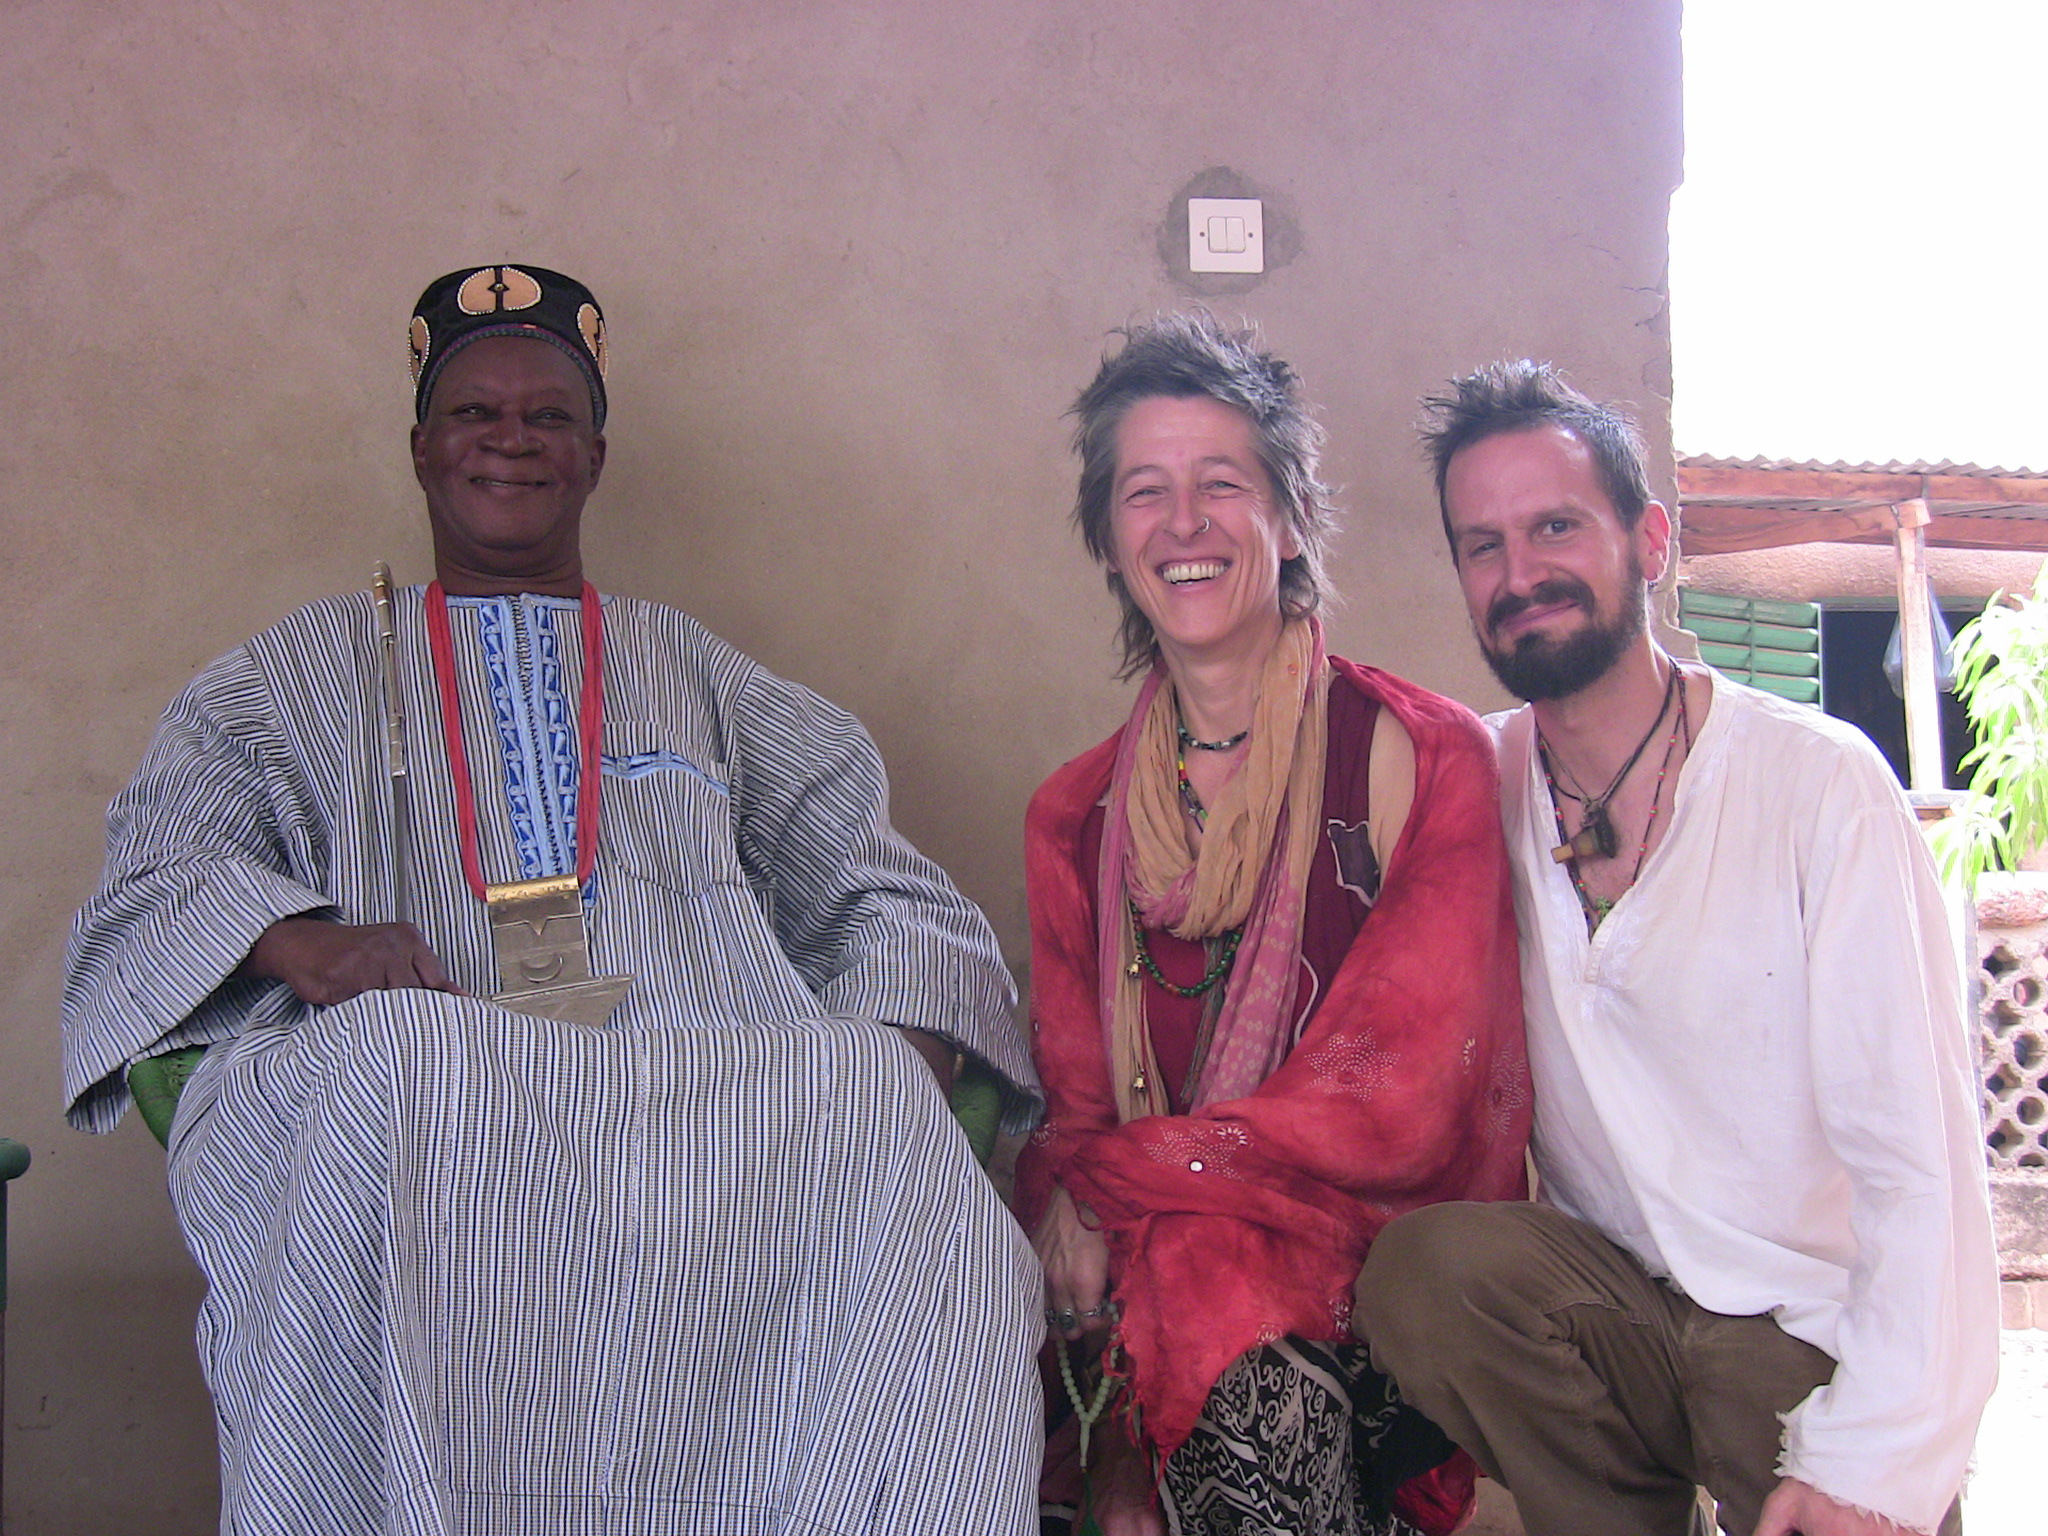 Three people posing for a photograph